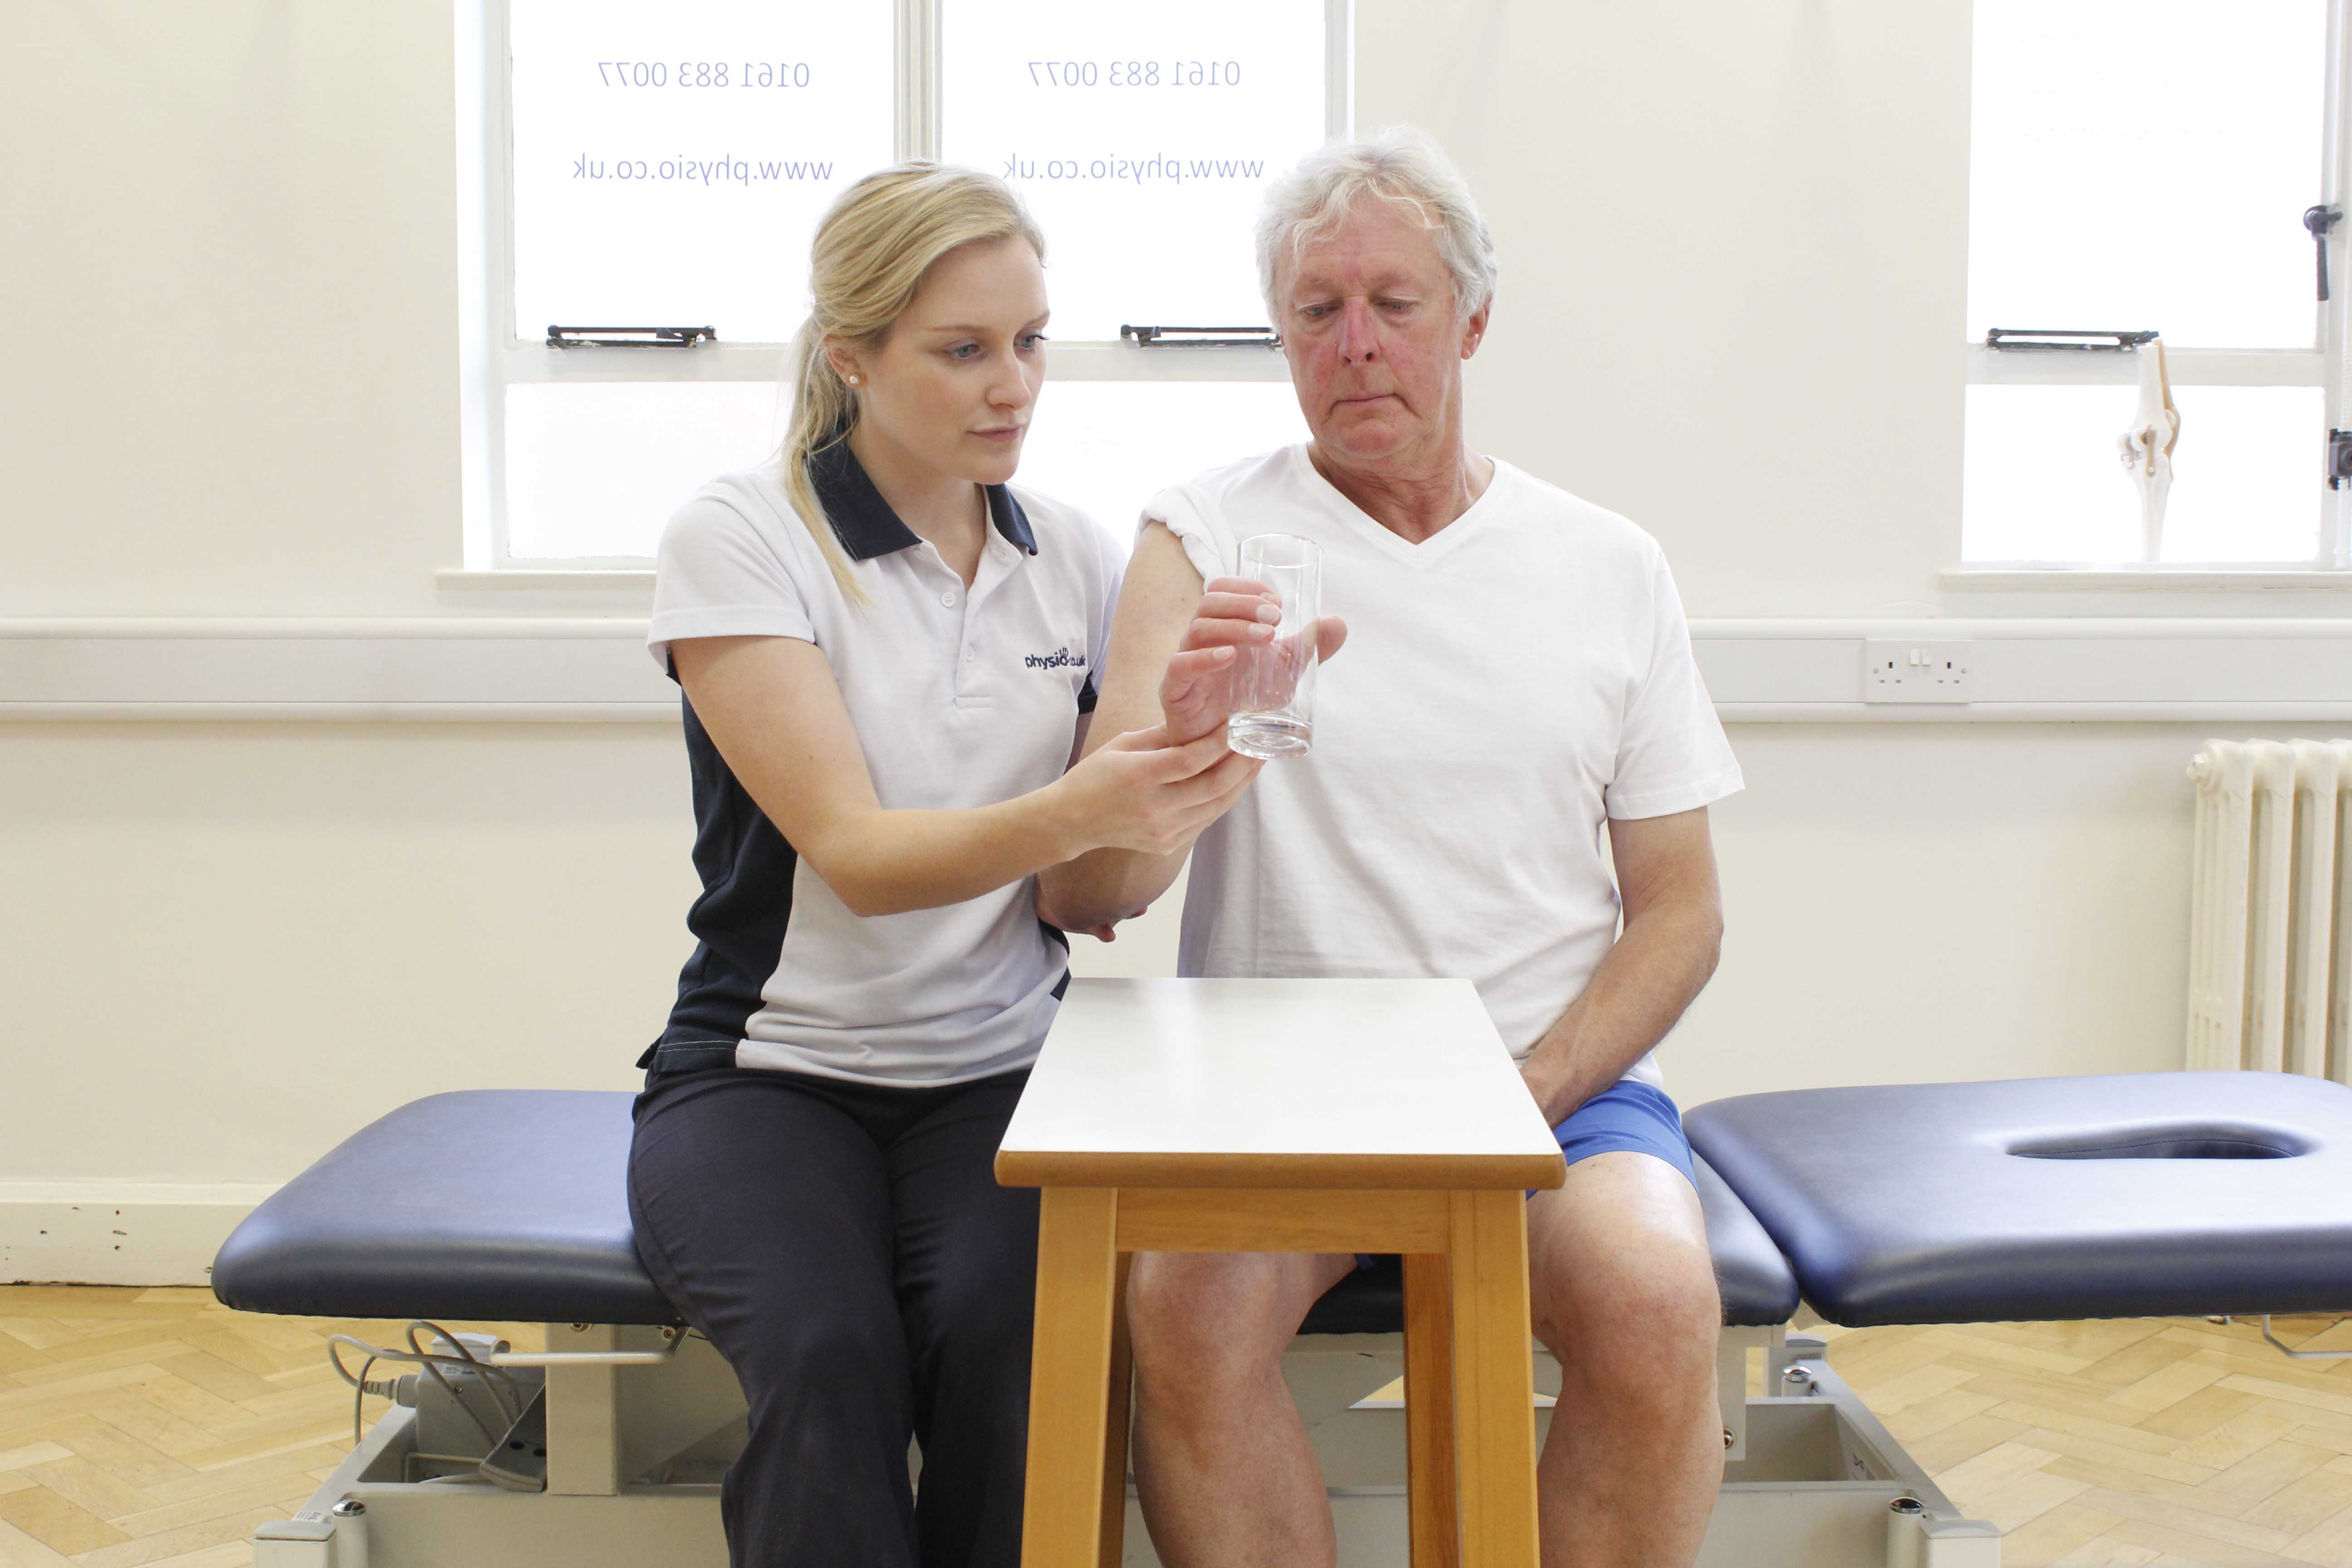 functional wrist exercises supervised by experienced MSK physiotherapist